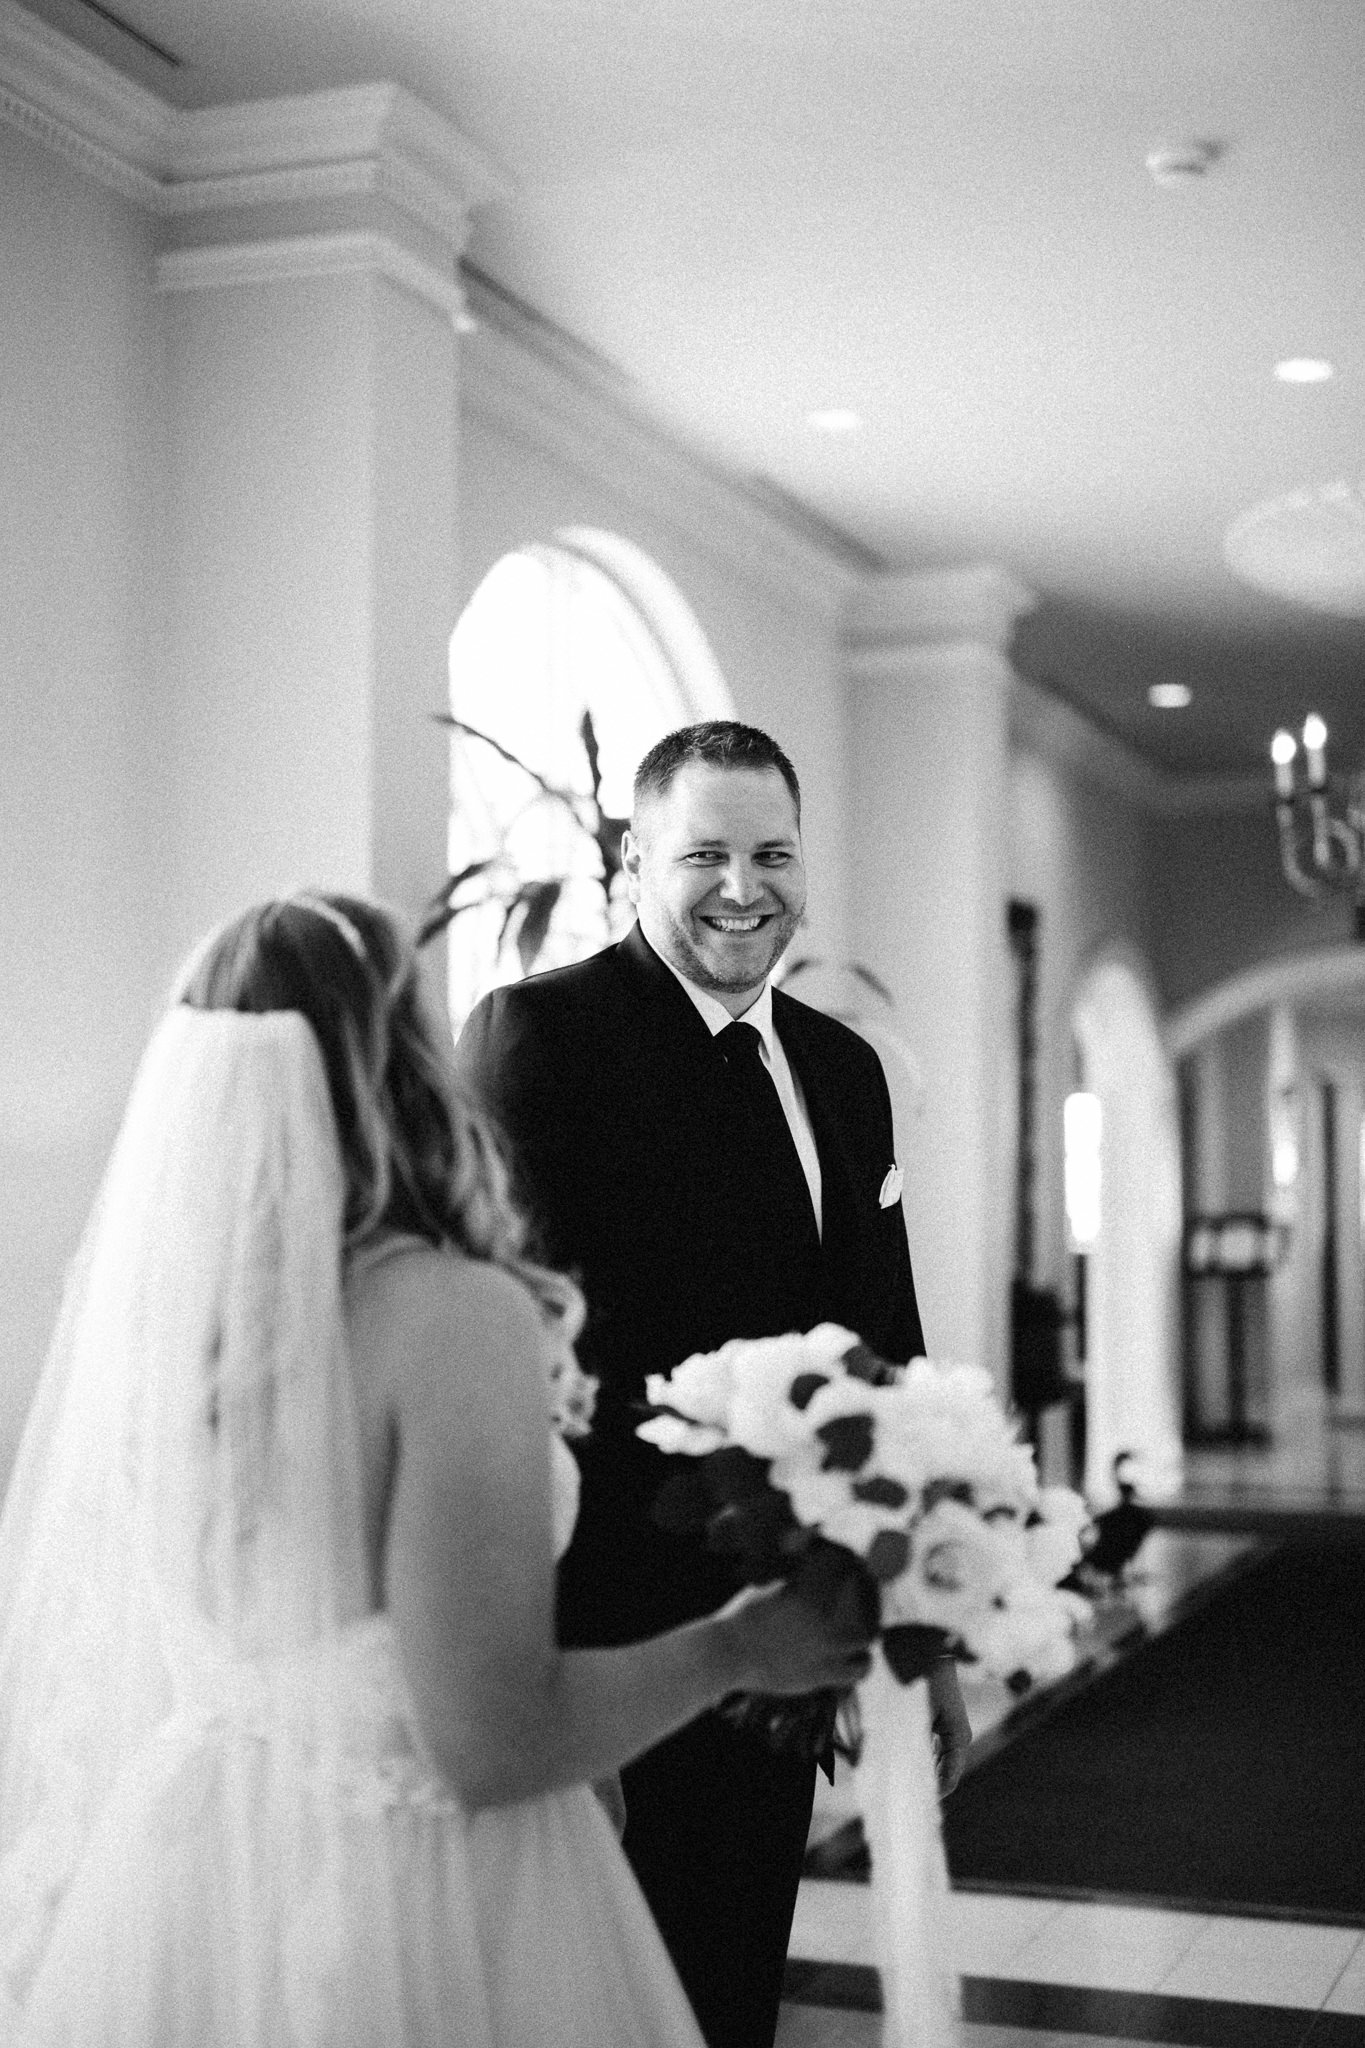 Queens-Landing-Niagara-on-the-Lake-Wedding-photography-by-Simply-Lace-009.JPG